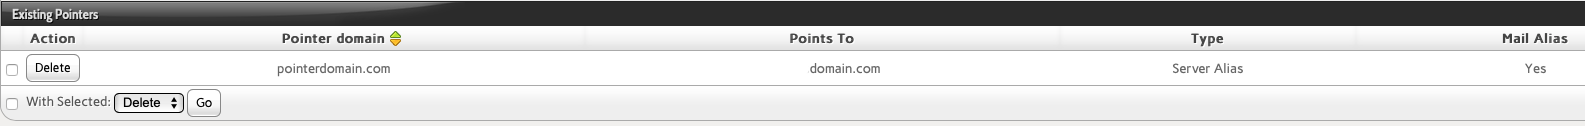 Find the Pointer Domain You Want to Remove and Click Delete and Confirm the Deletion Request